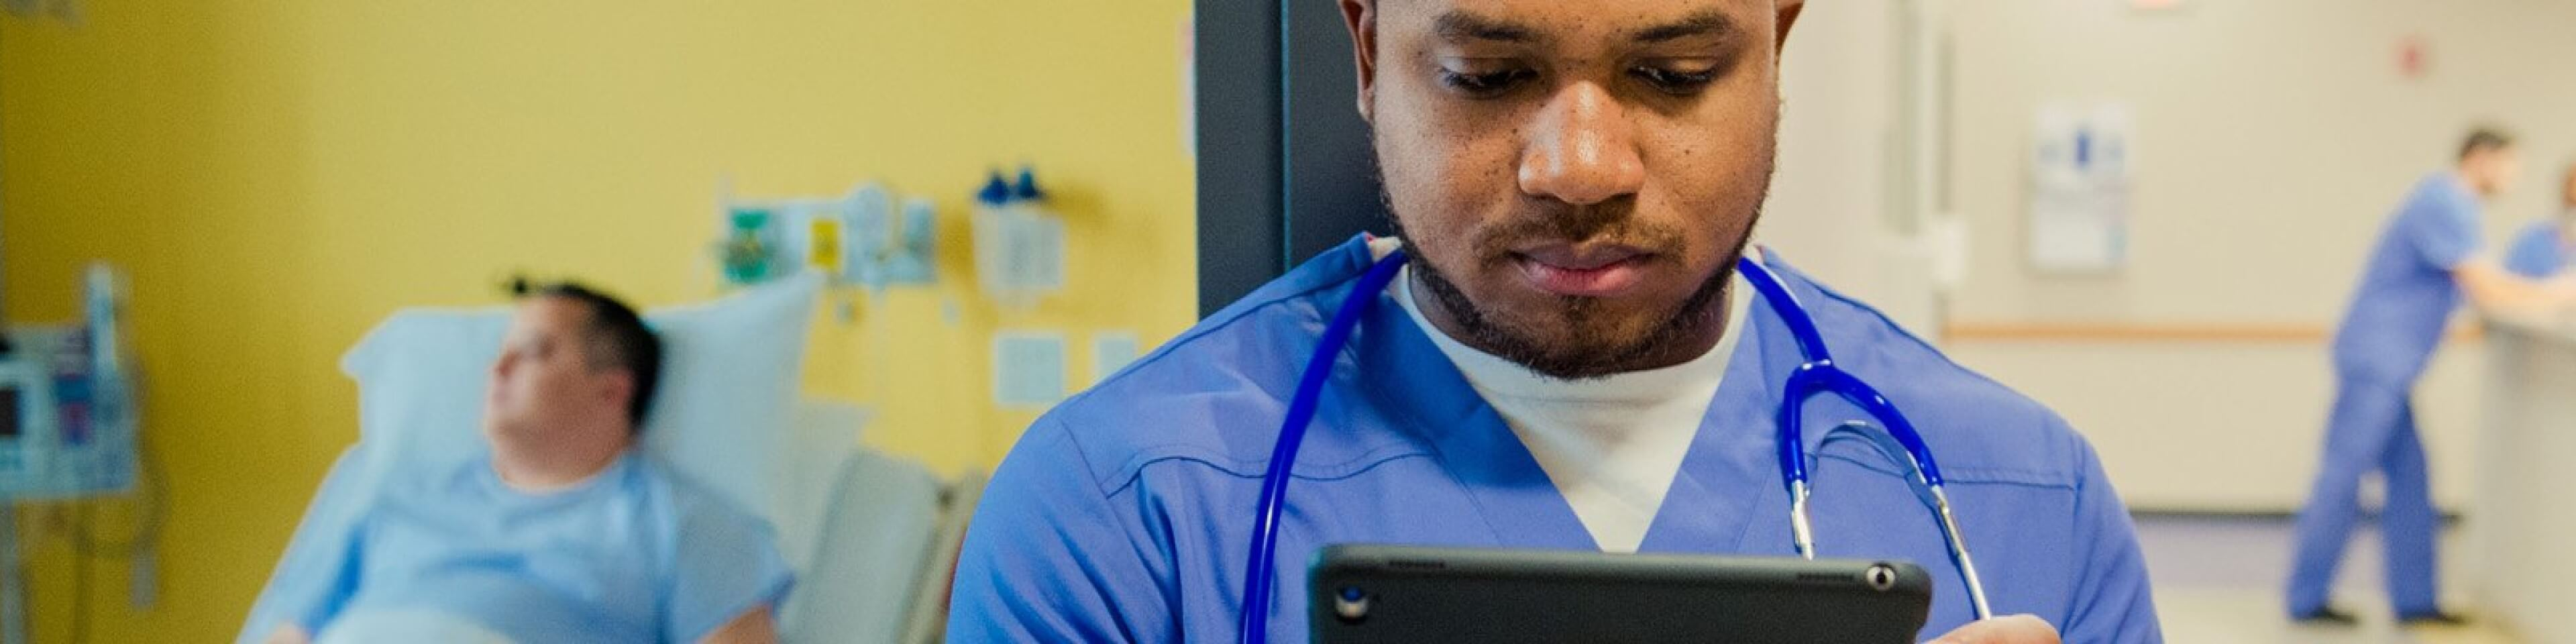 Doctor looking at patient data on a tablet